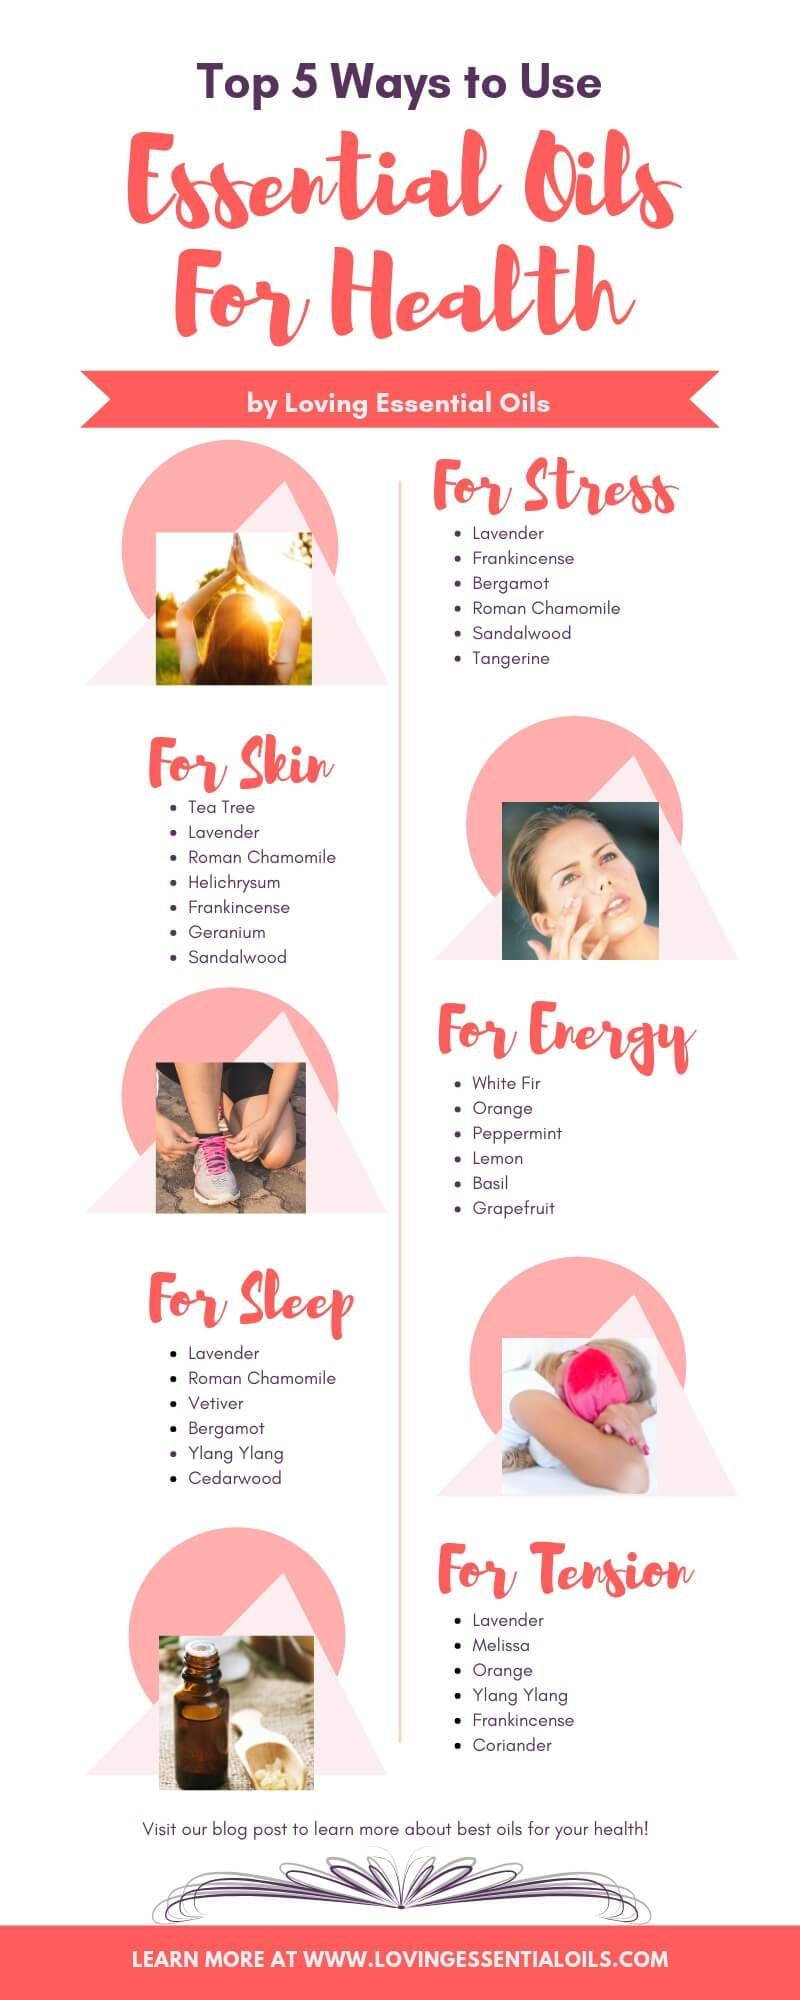 Top 5 Ways to Use Essential Oils For Health by Loving Essential Oils